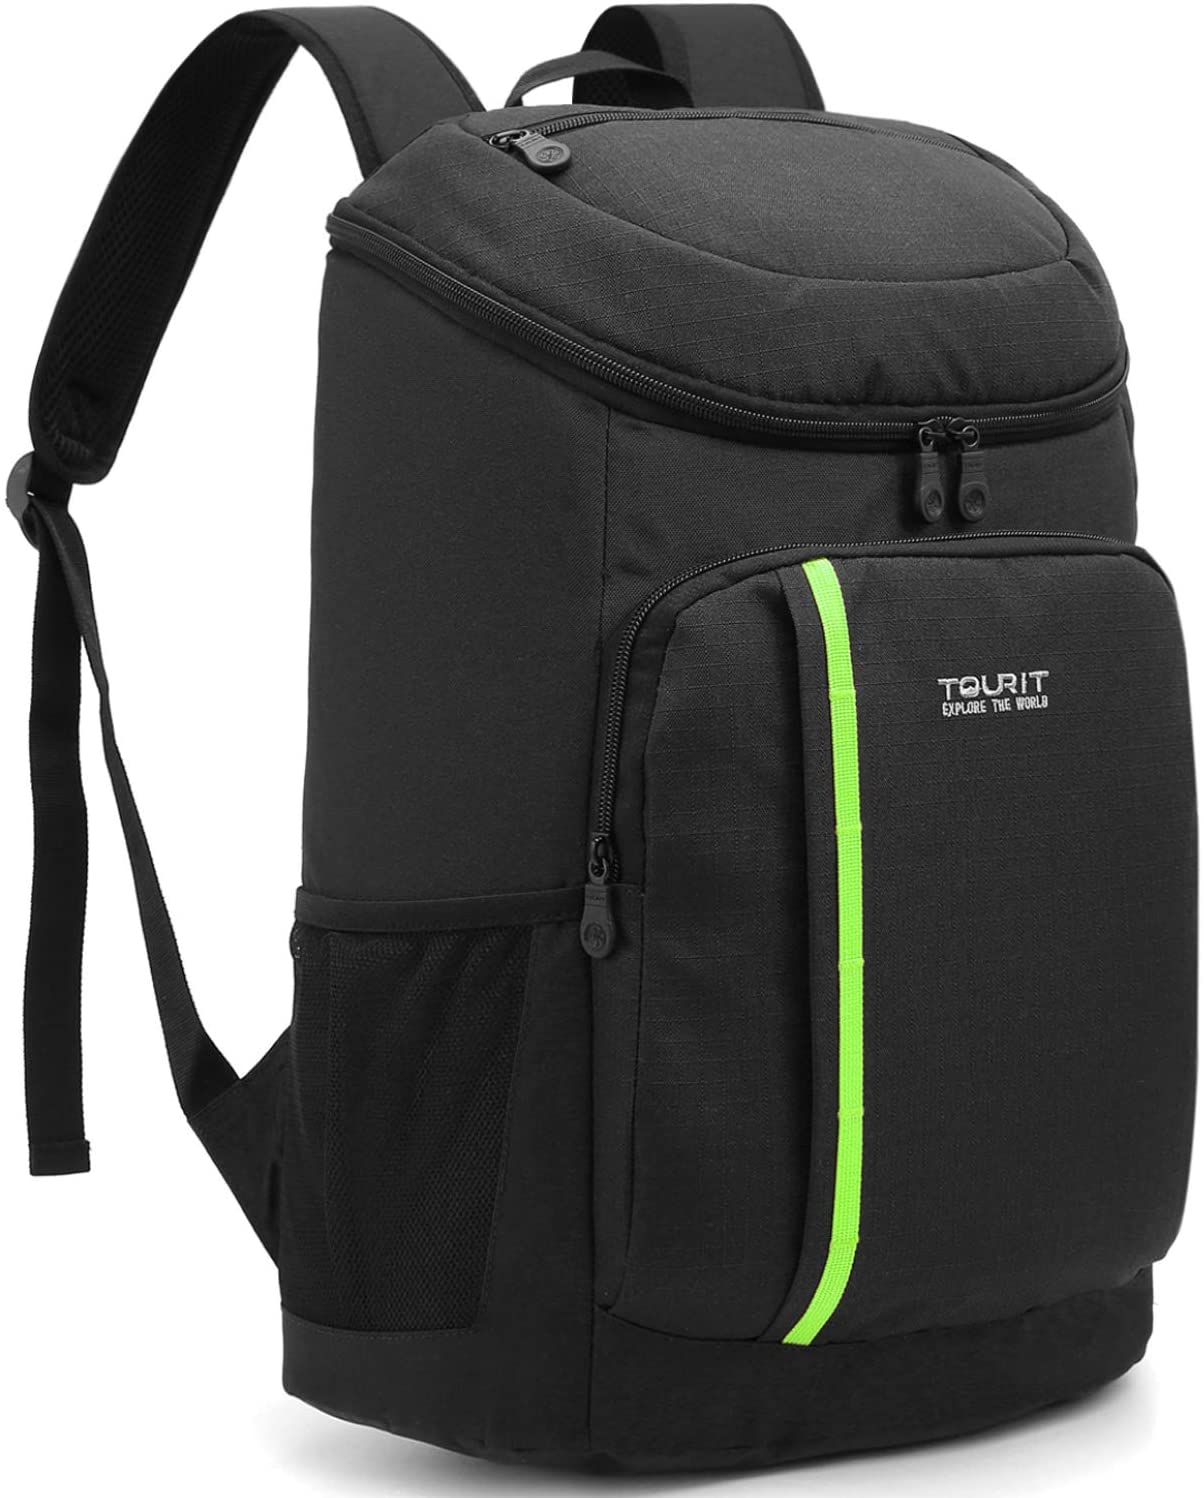 TOURIT Insulated Leak-Proof Soft Backpack Cooler